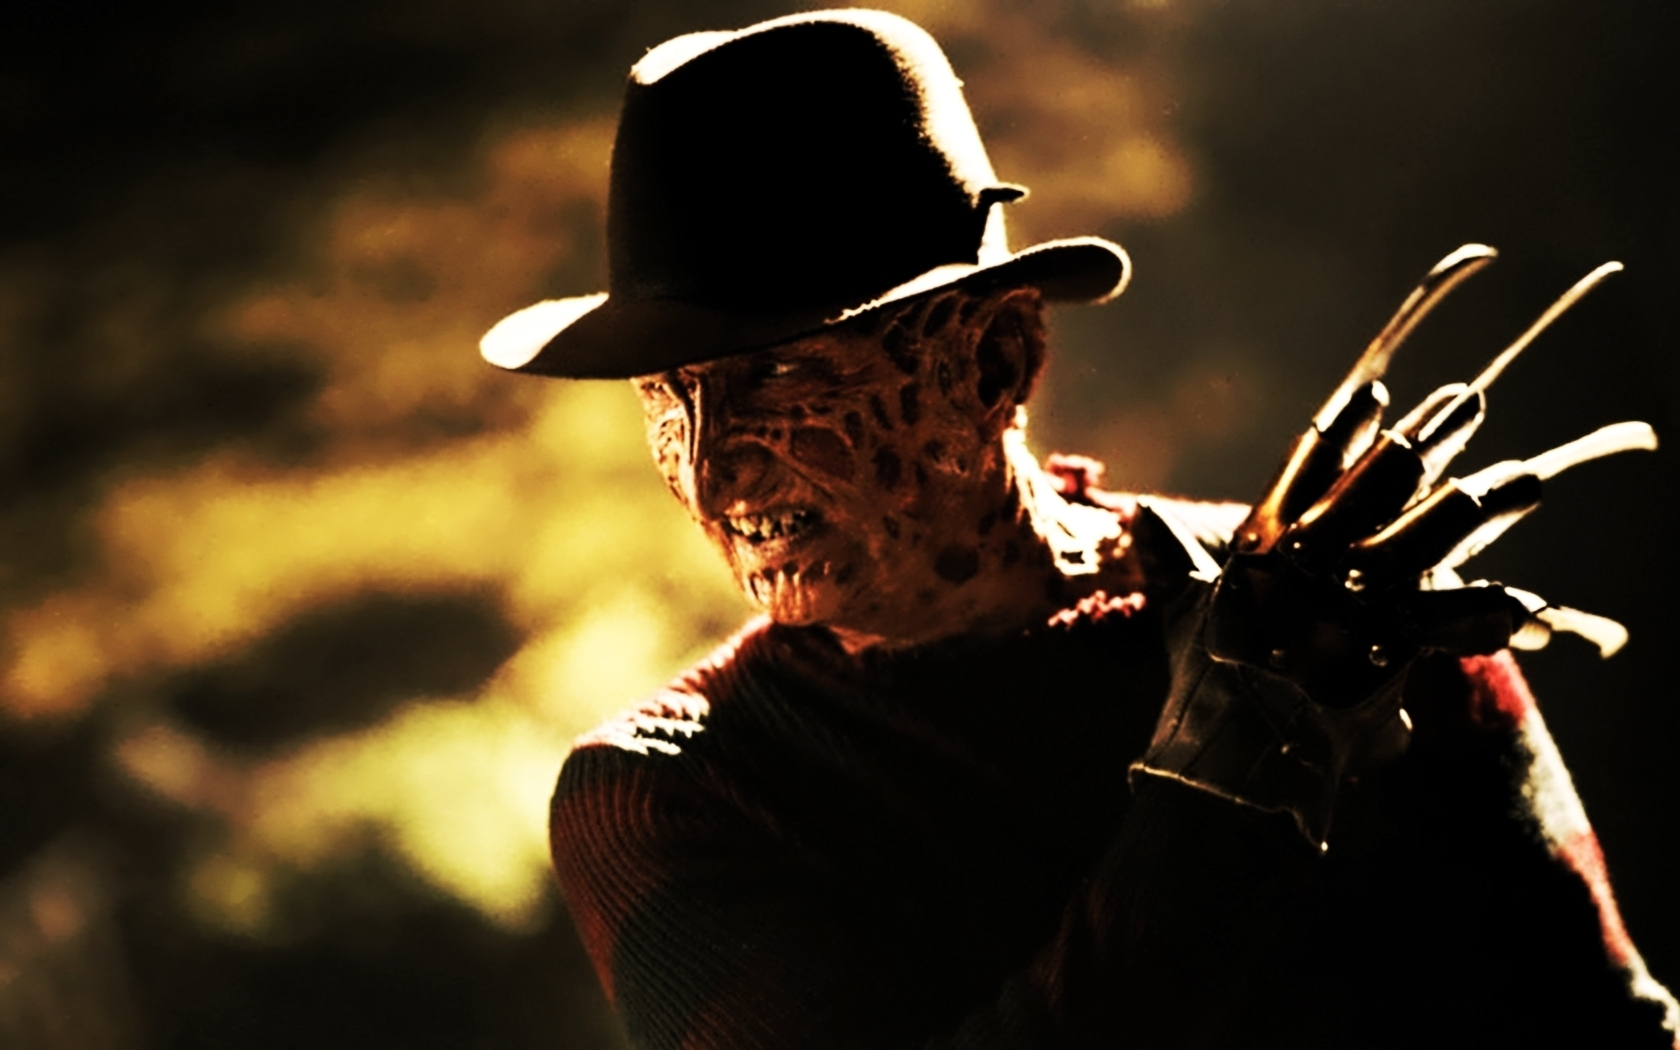 12 HD Freddy Krueger Wallpapers - HDWallSource.com